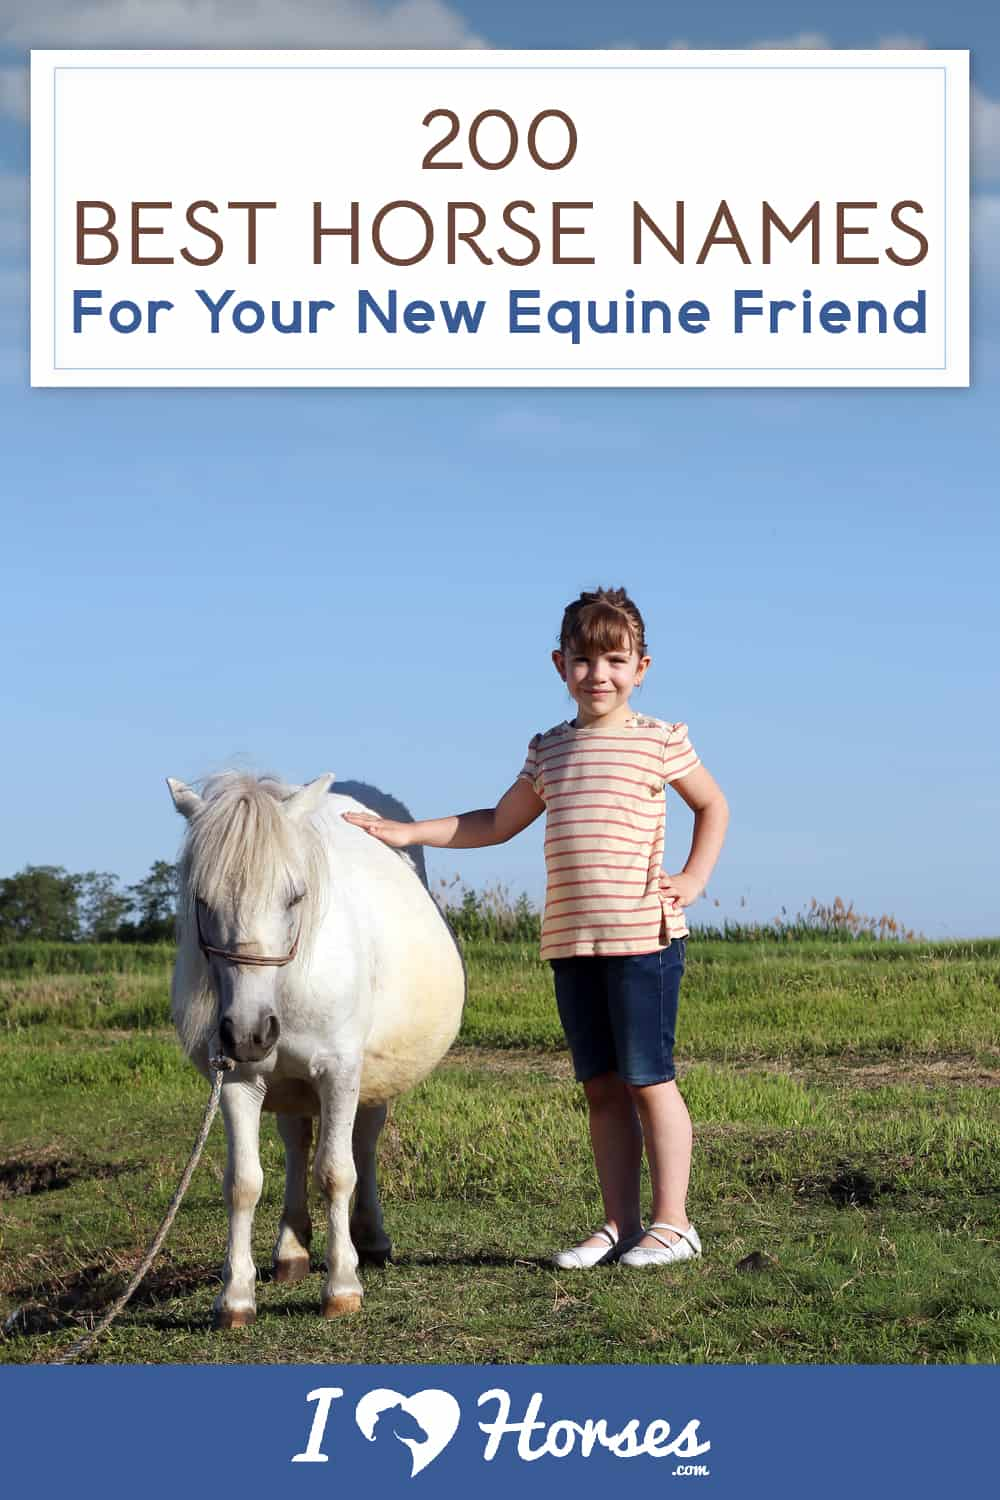 200 Horse Names For Your New Equine Friend